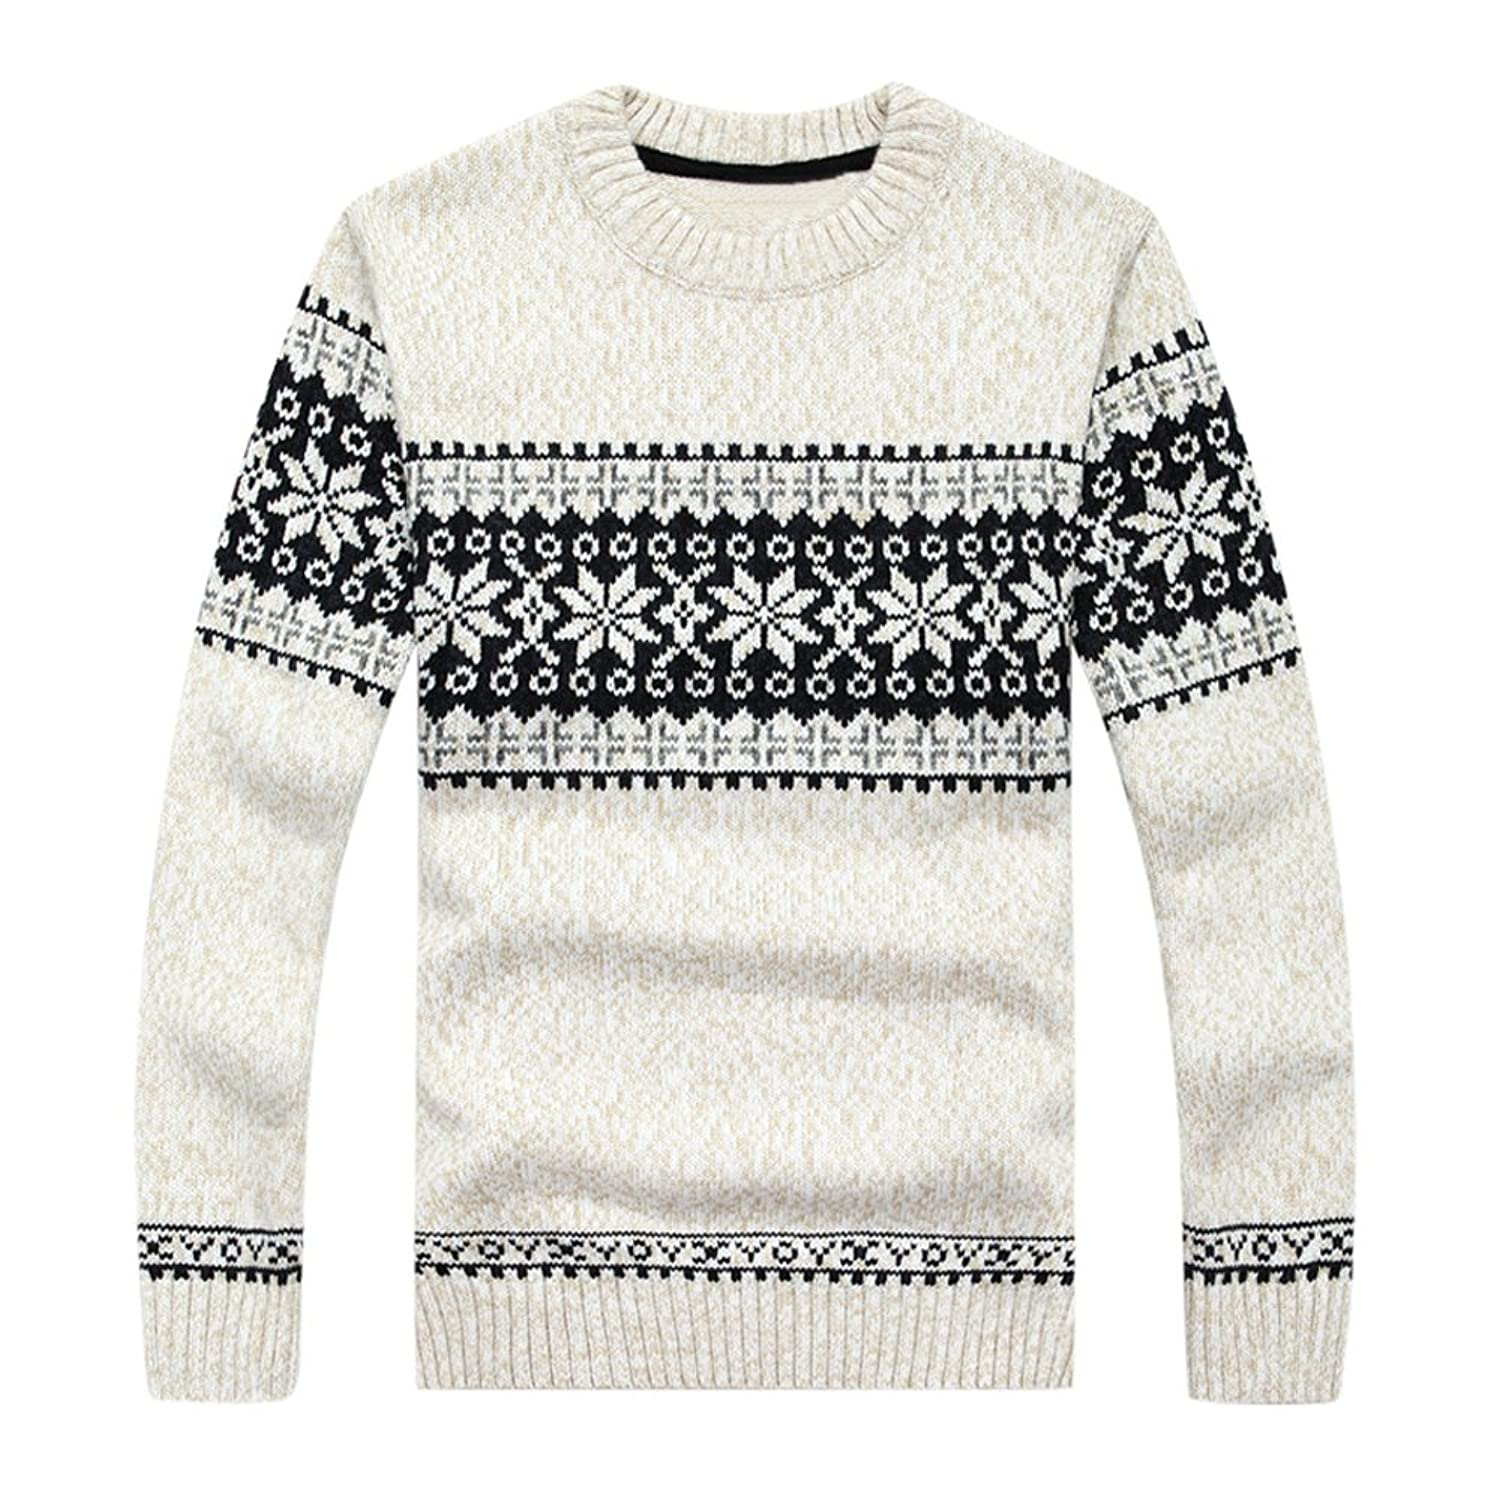 Men's Thicken Long Sleeve Brocade Round Neck Pullover Knitted Sweater